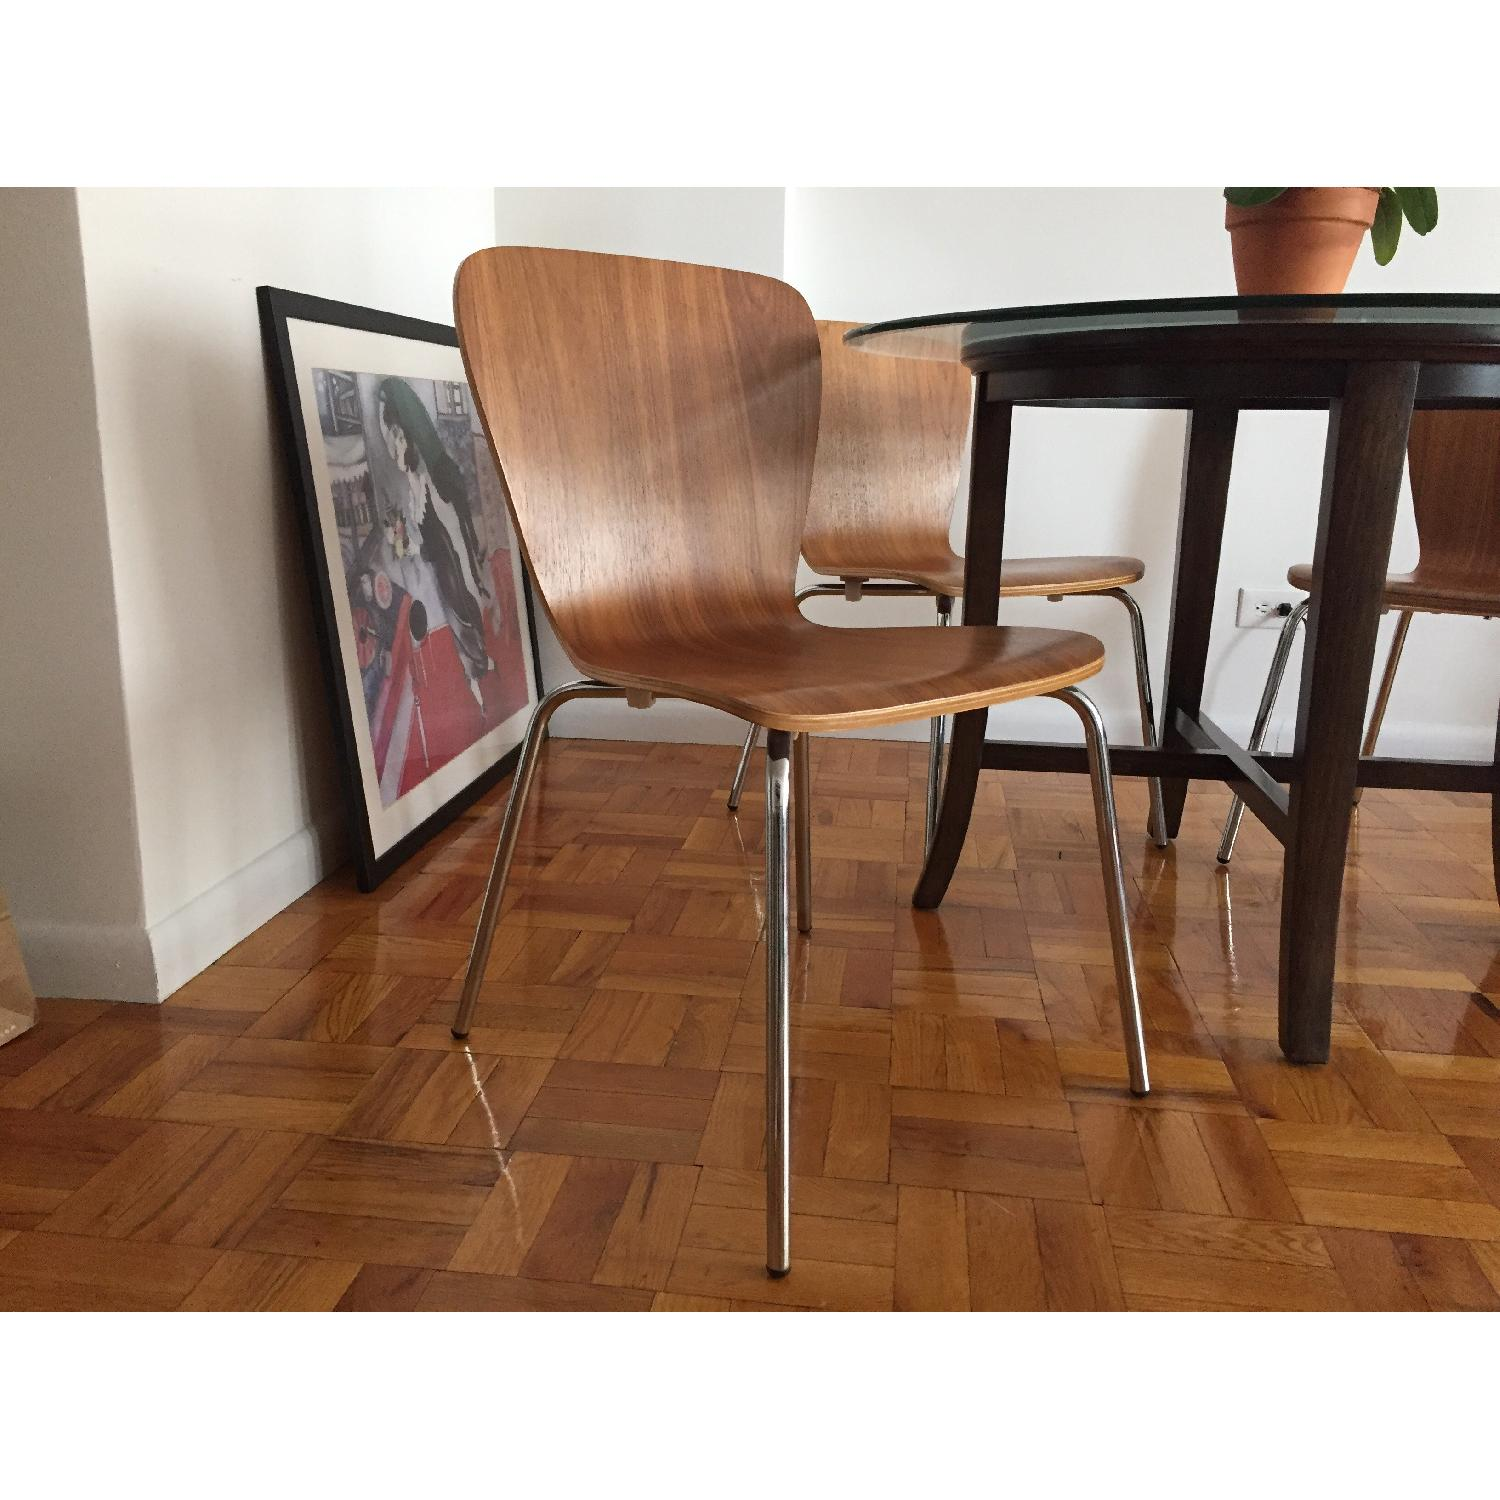 Crate & Barrel Modern Dining Chairs in Walnut Wood - image-3